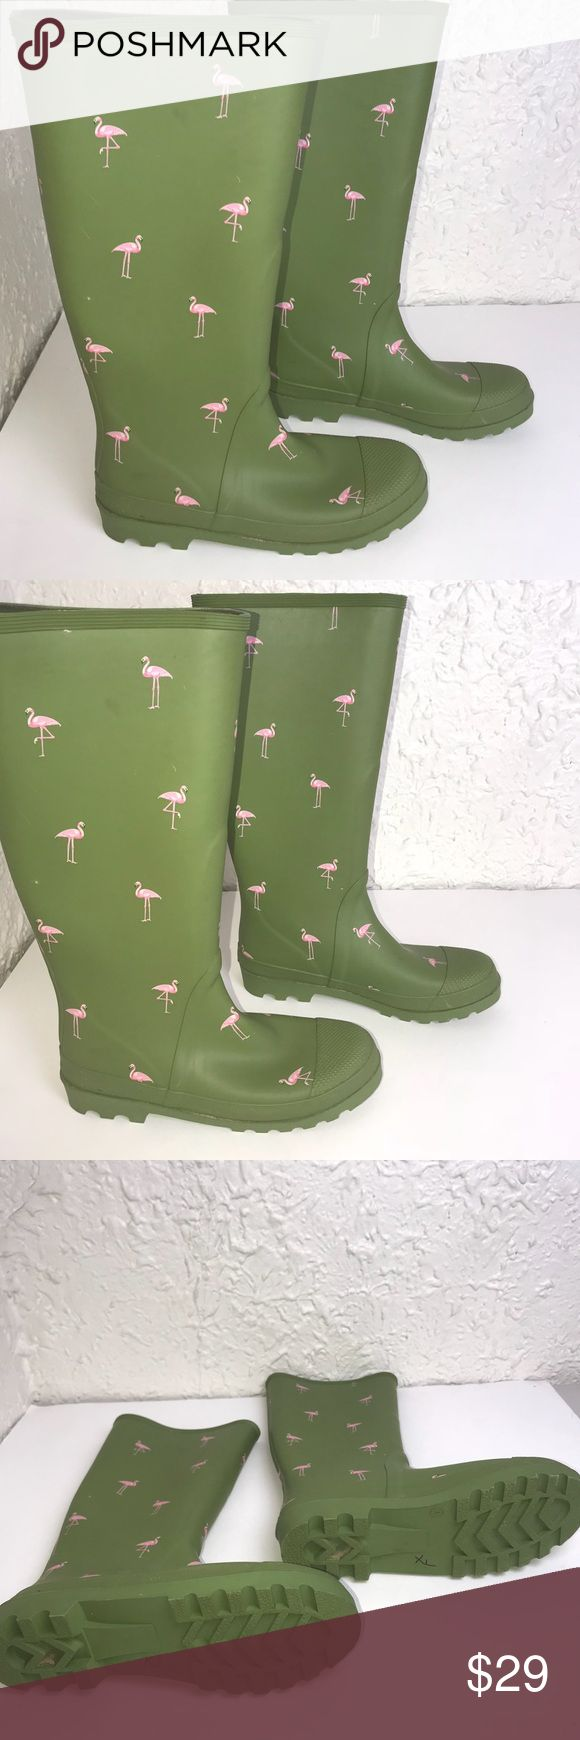 Green J. Crew size 8 Rain boots Novelty Flamingo Yaaaaaas! These are adorable! Let those classmates and colleagues Hate on you! You know they are gonna be jealous because you are so dang gone cute in these Pink Flamingo J Crew Rubber Boots. Just looking, they look perfect. Upon close inspection you will be slight scratches and 1 set of black marking. If anyone is that close to see them they need to be paying some of your bills. OKAaaaaaaY! Make me an offer! J. Crew Shoes Winter & Rain Boots